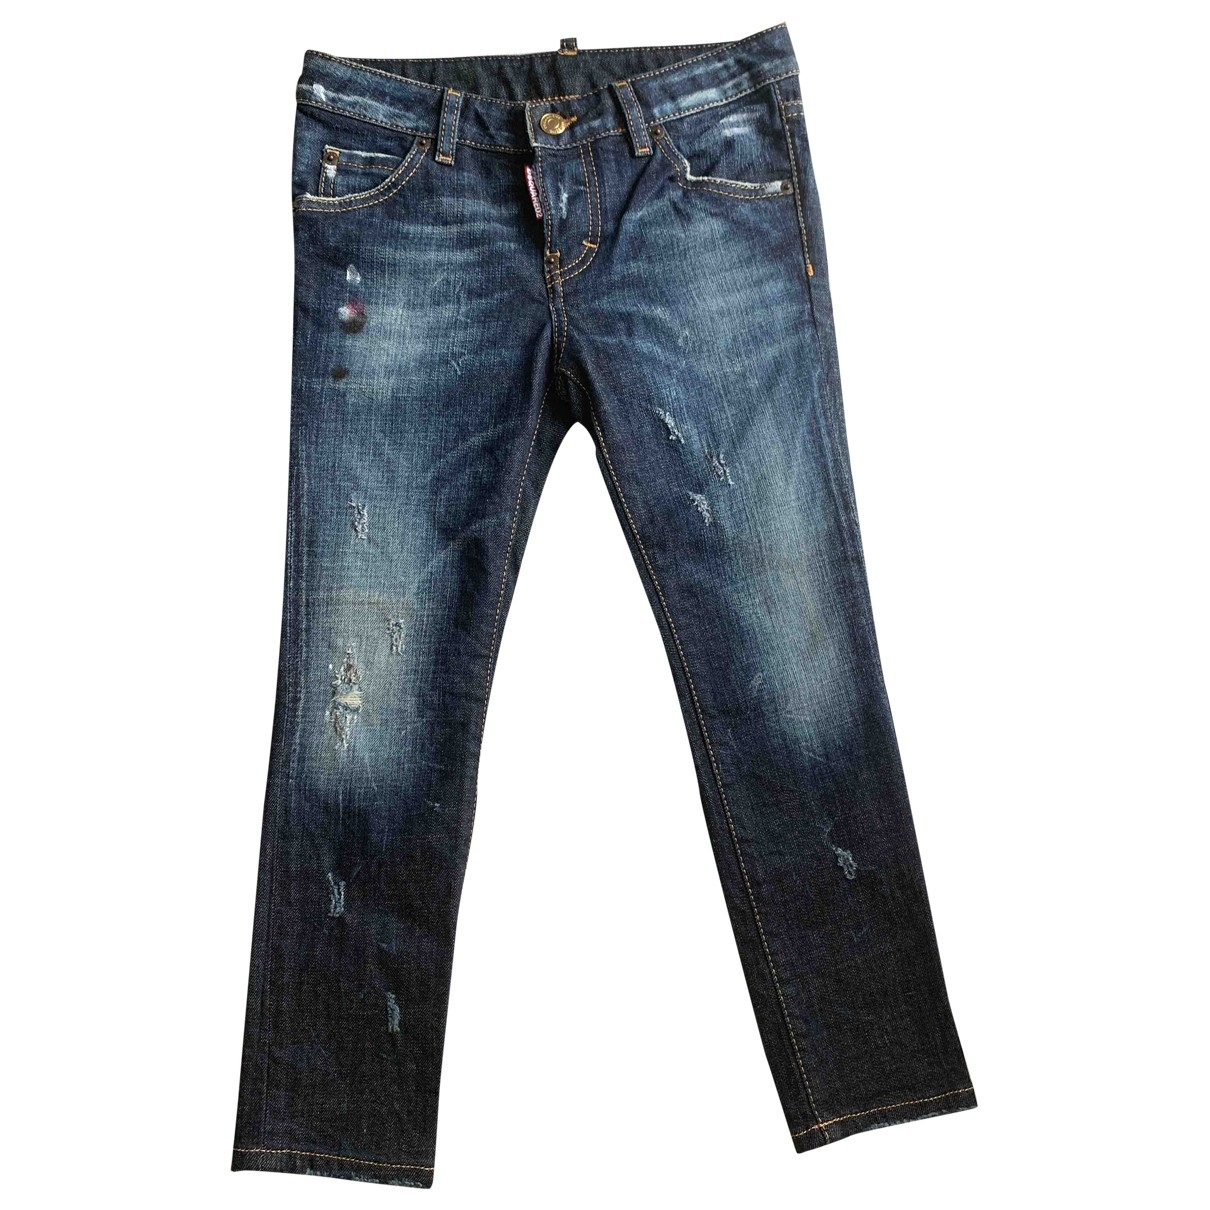 Dsquared2 N Blue Denim - Jeans Trousers for Kids 8 years - up to 128cm FR